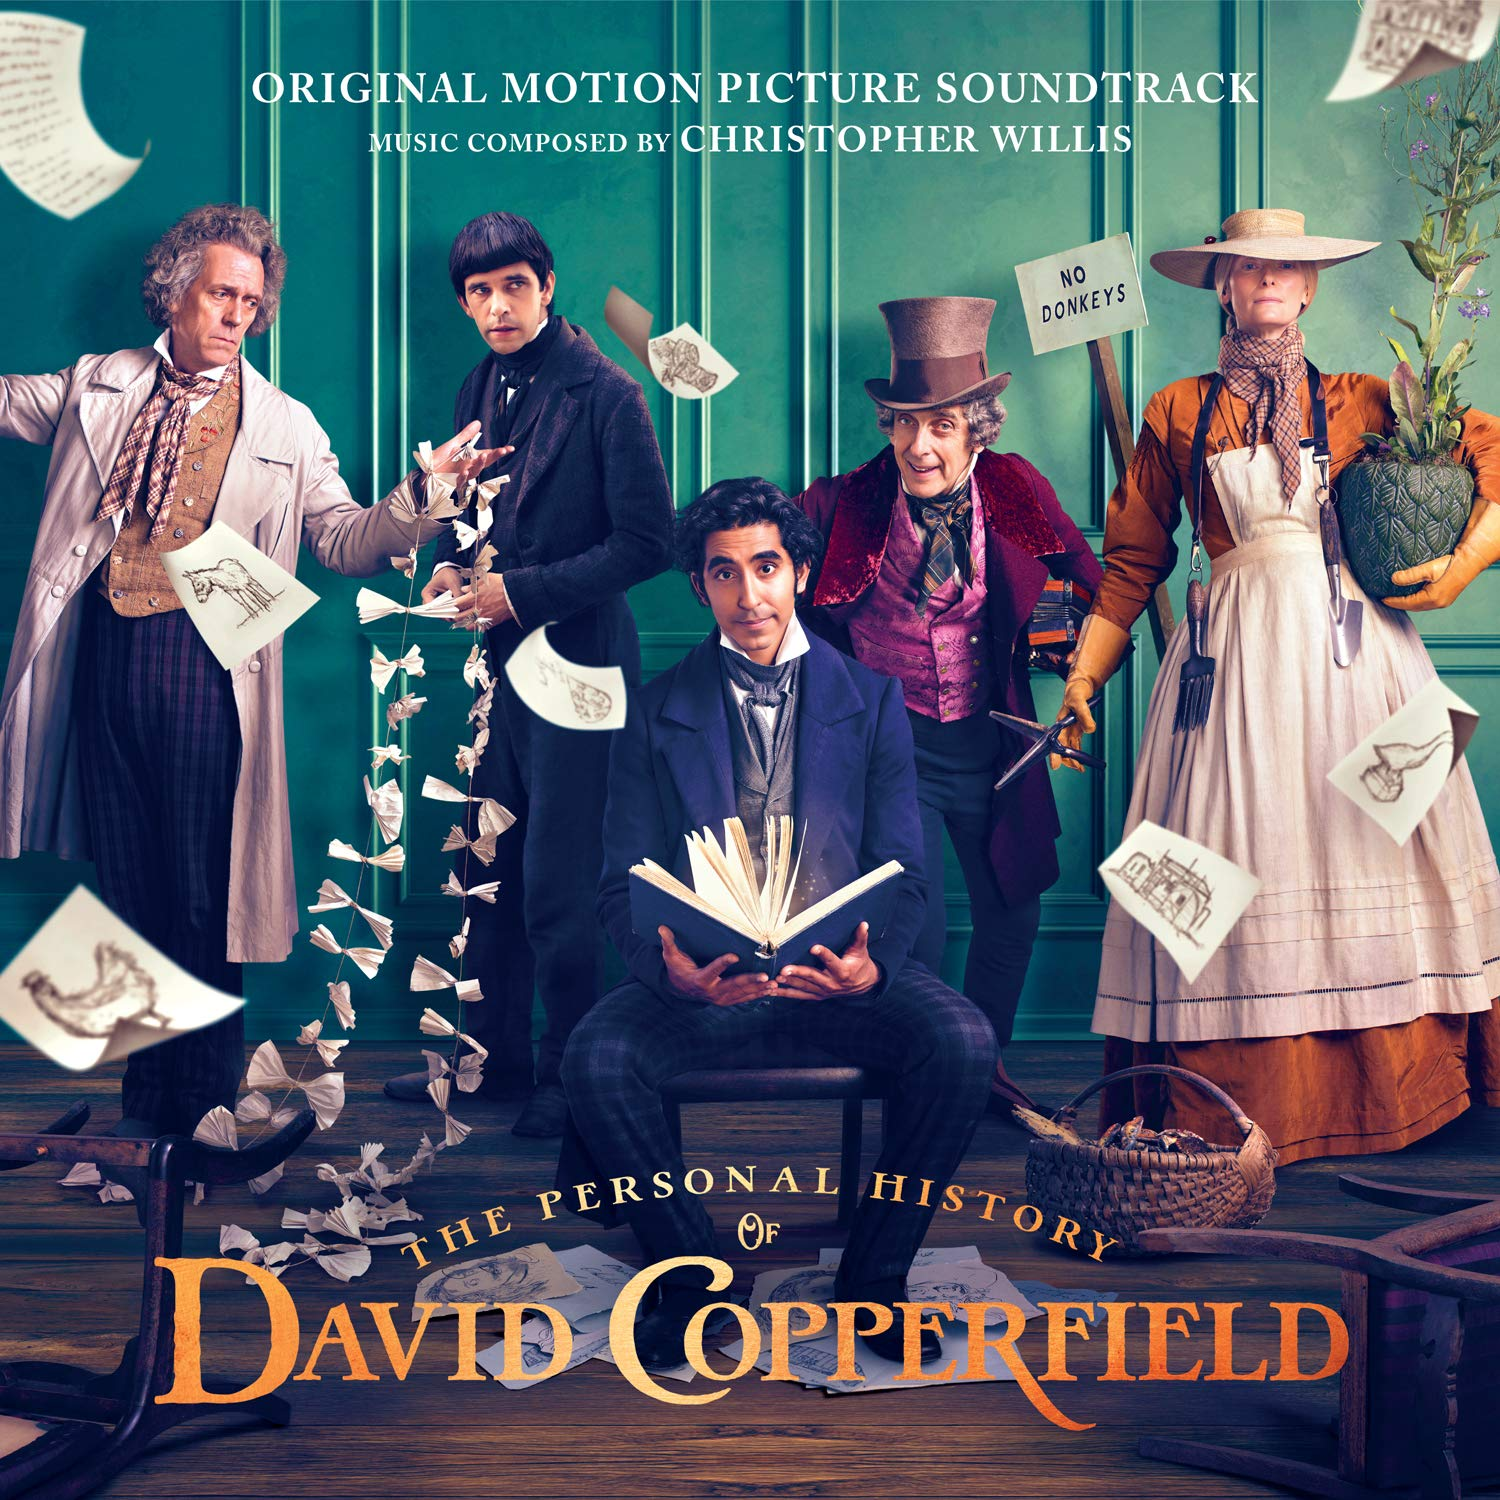 bande originale soundtrack ost score histoire personnelle story personal david copperfield disney